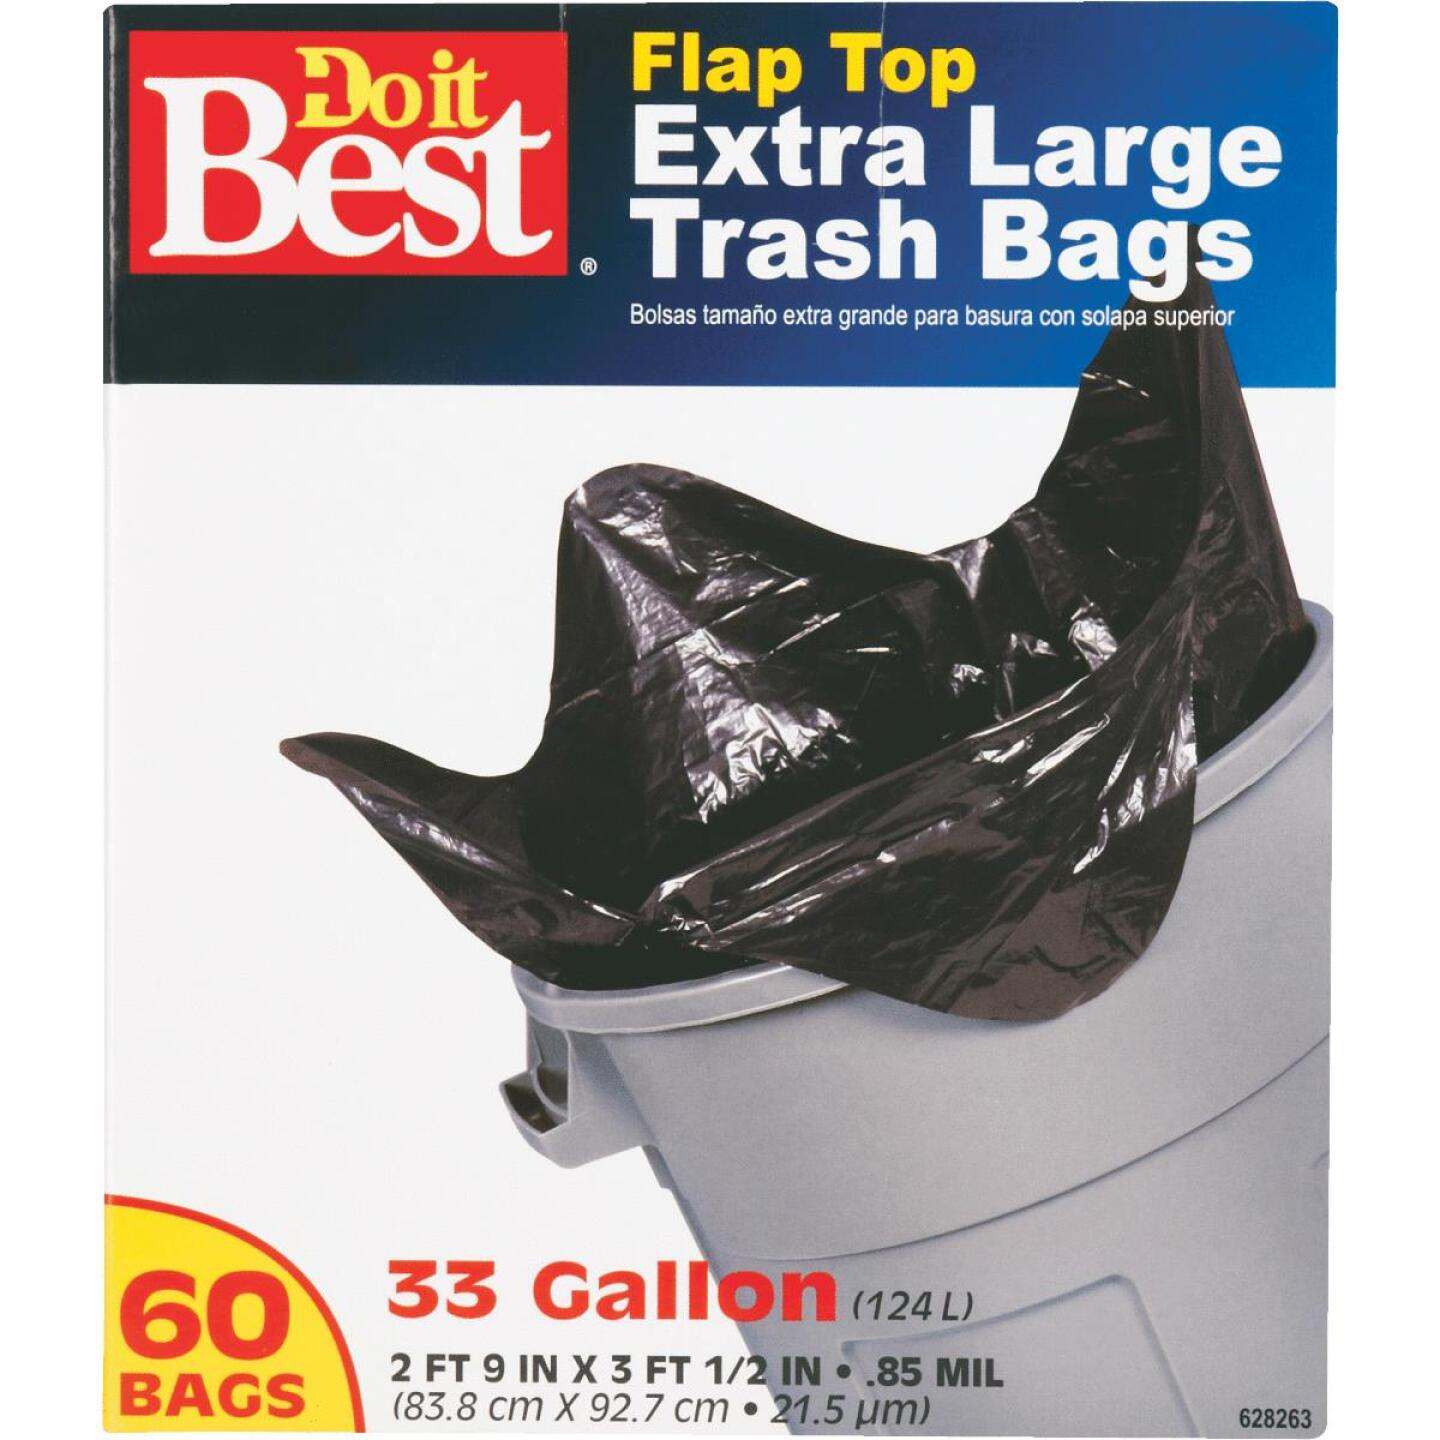 Do it Best 33 Gal. Extra Large Black Trash Bag (60-Count) Image 2